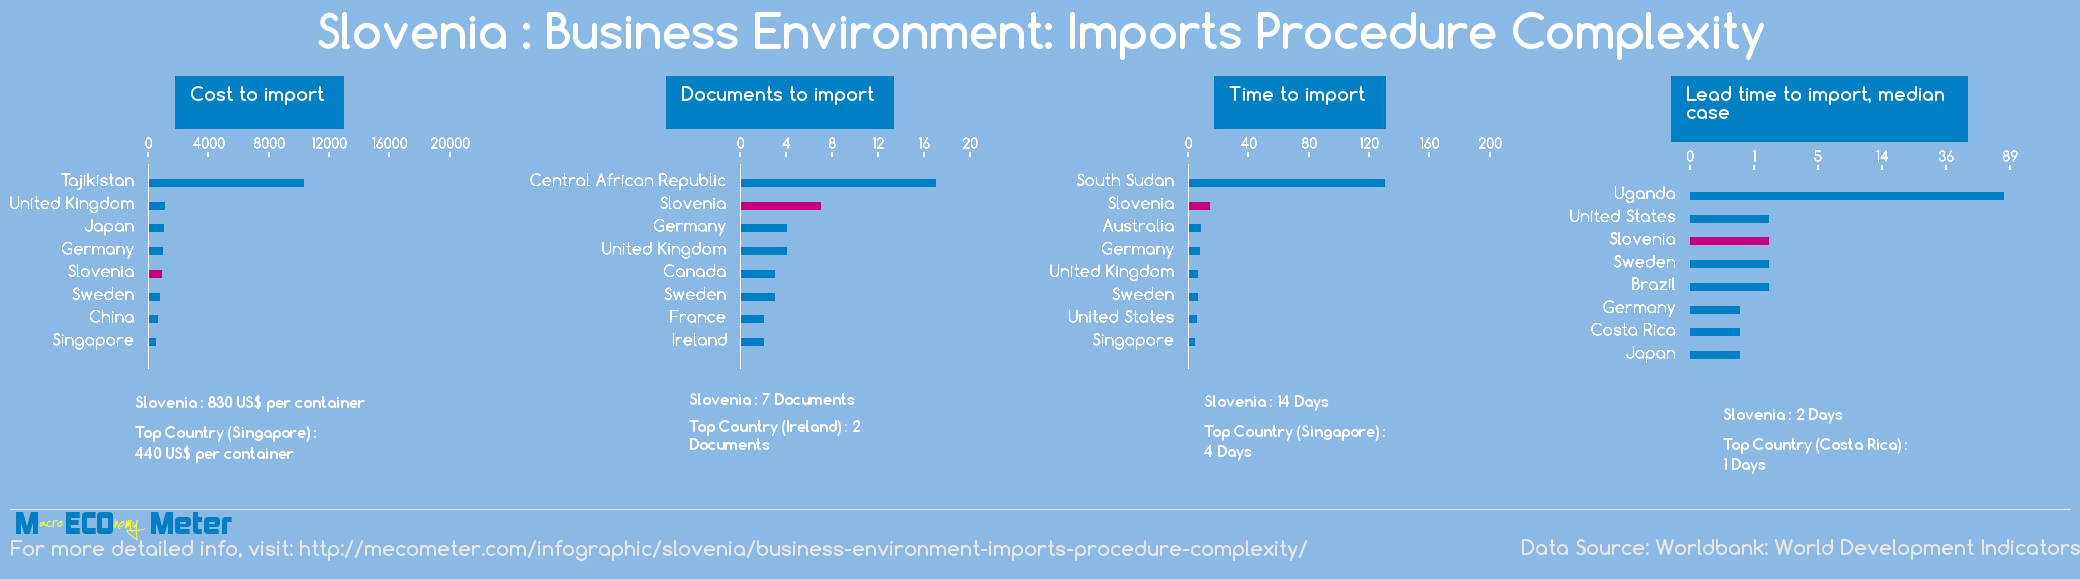 Slovenia : Business Environment: Imports Procedure Complexity